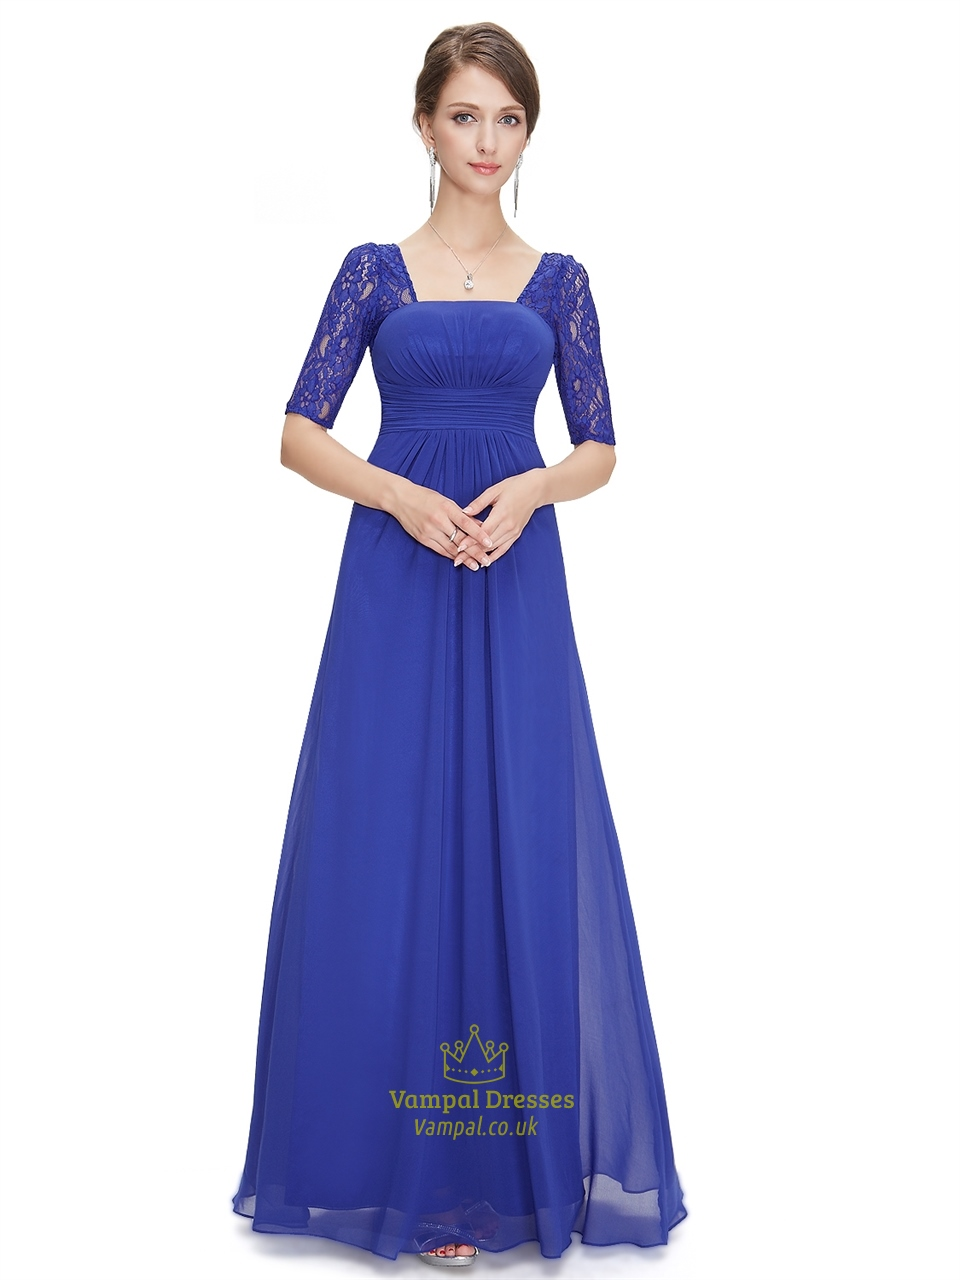 Royal Blue Chiffon Party Wedding Bridesmaid Dress With Lace Sleeves ...